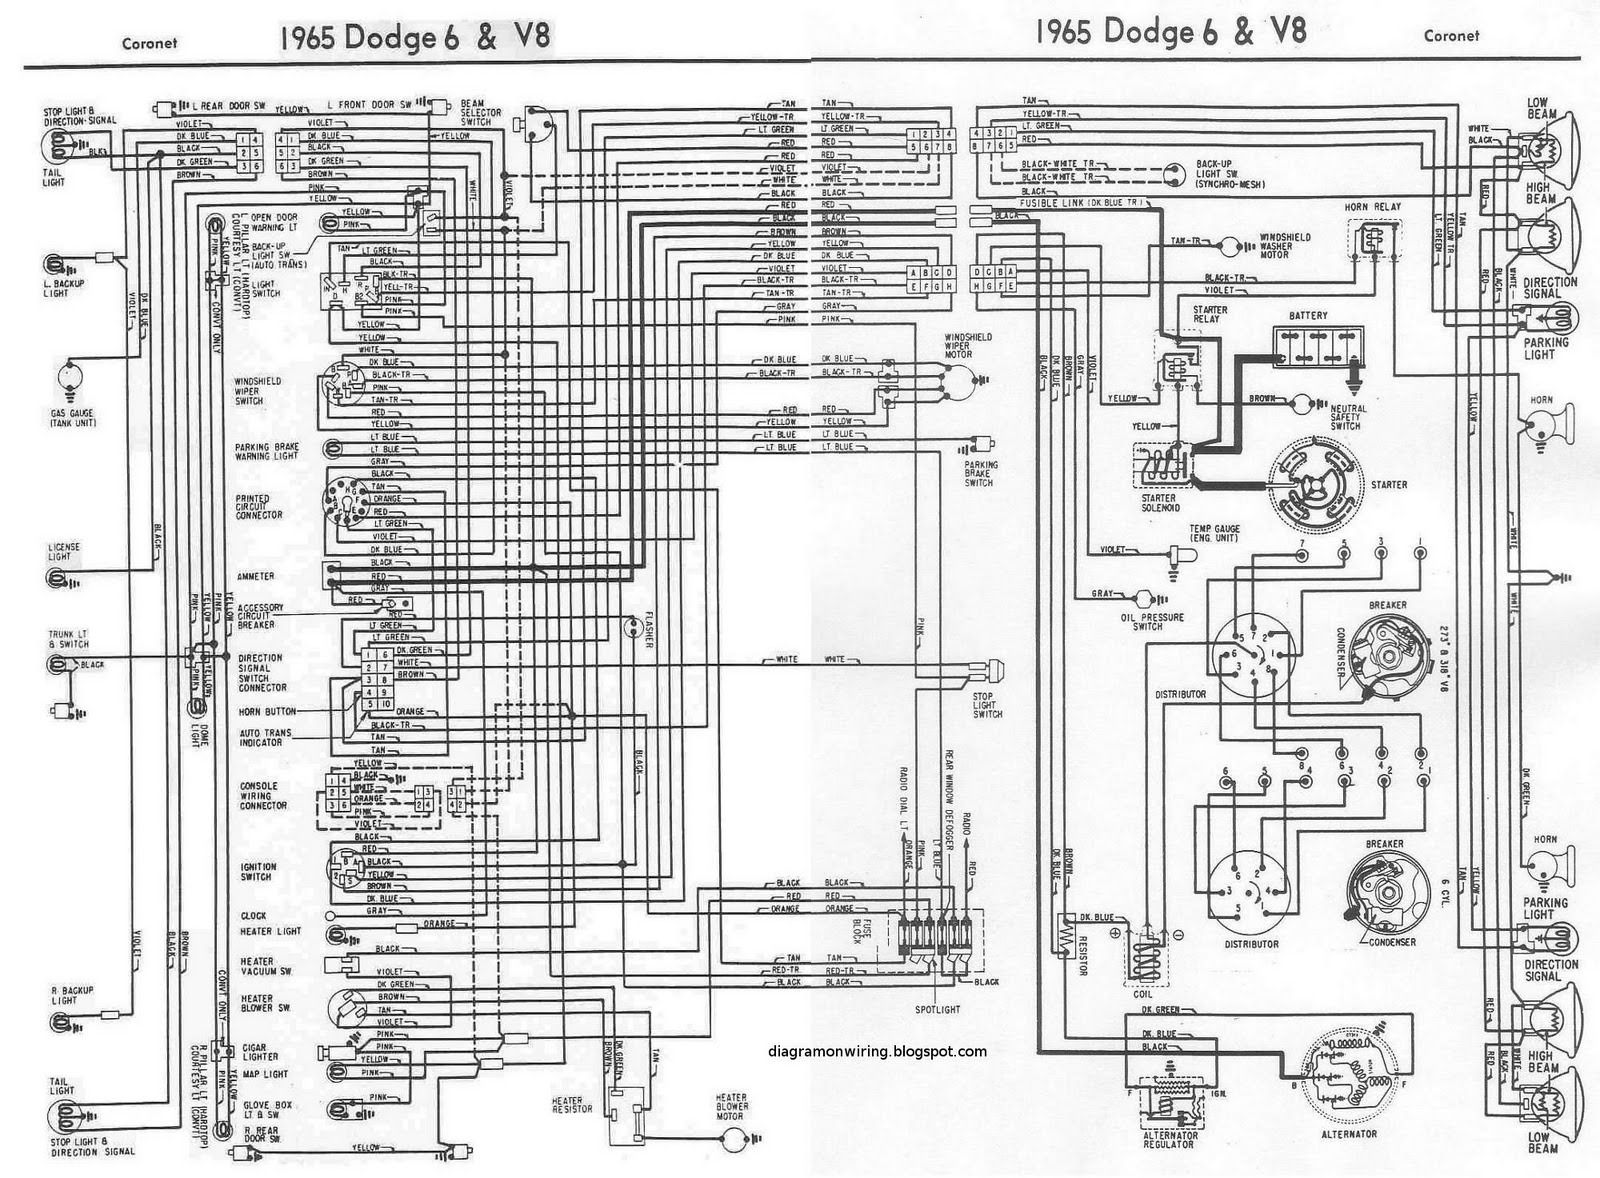 69 Coronet Wiring Diagram FULL HD Version Wiring Diagram - MARZ-DIAGRAM .ARROCCOTURICCHI.ITDiagram Database And Images